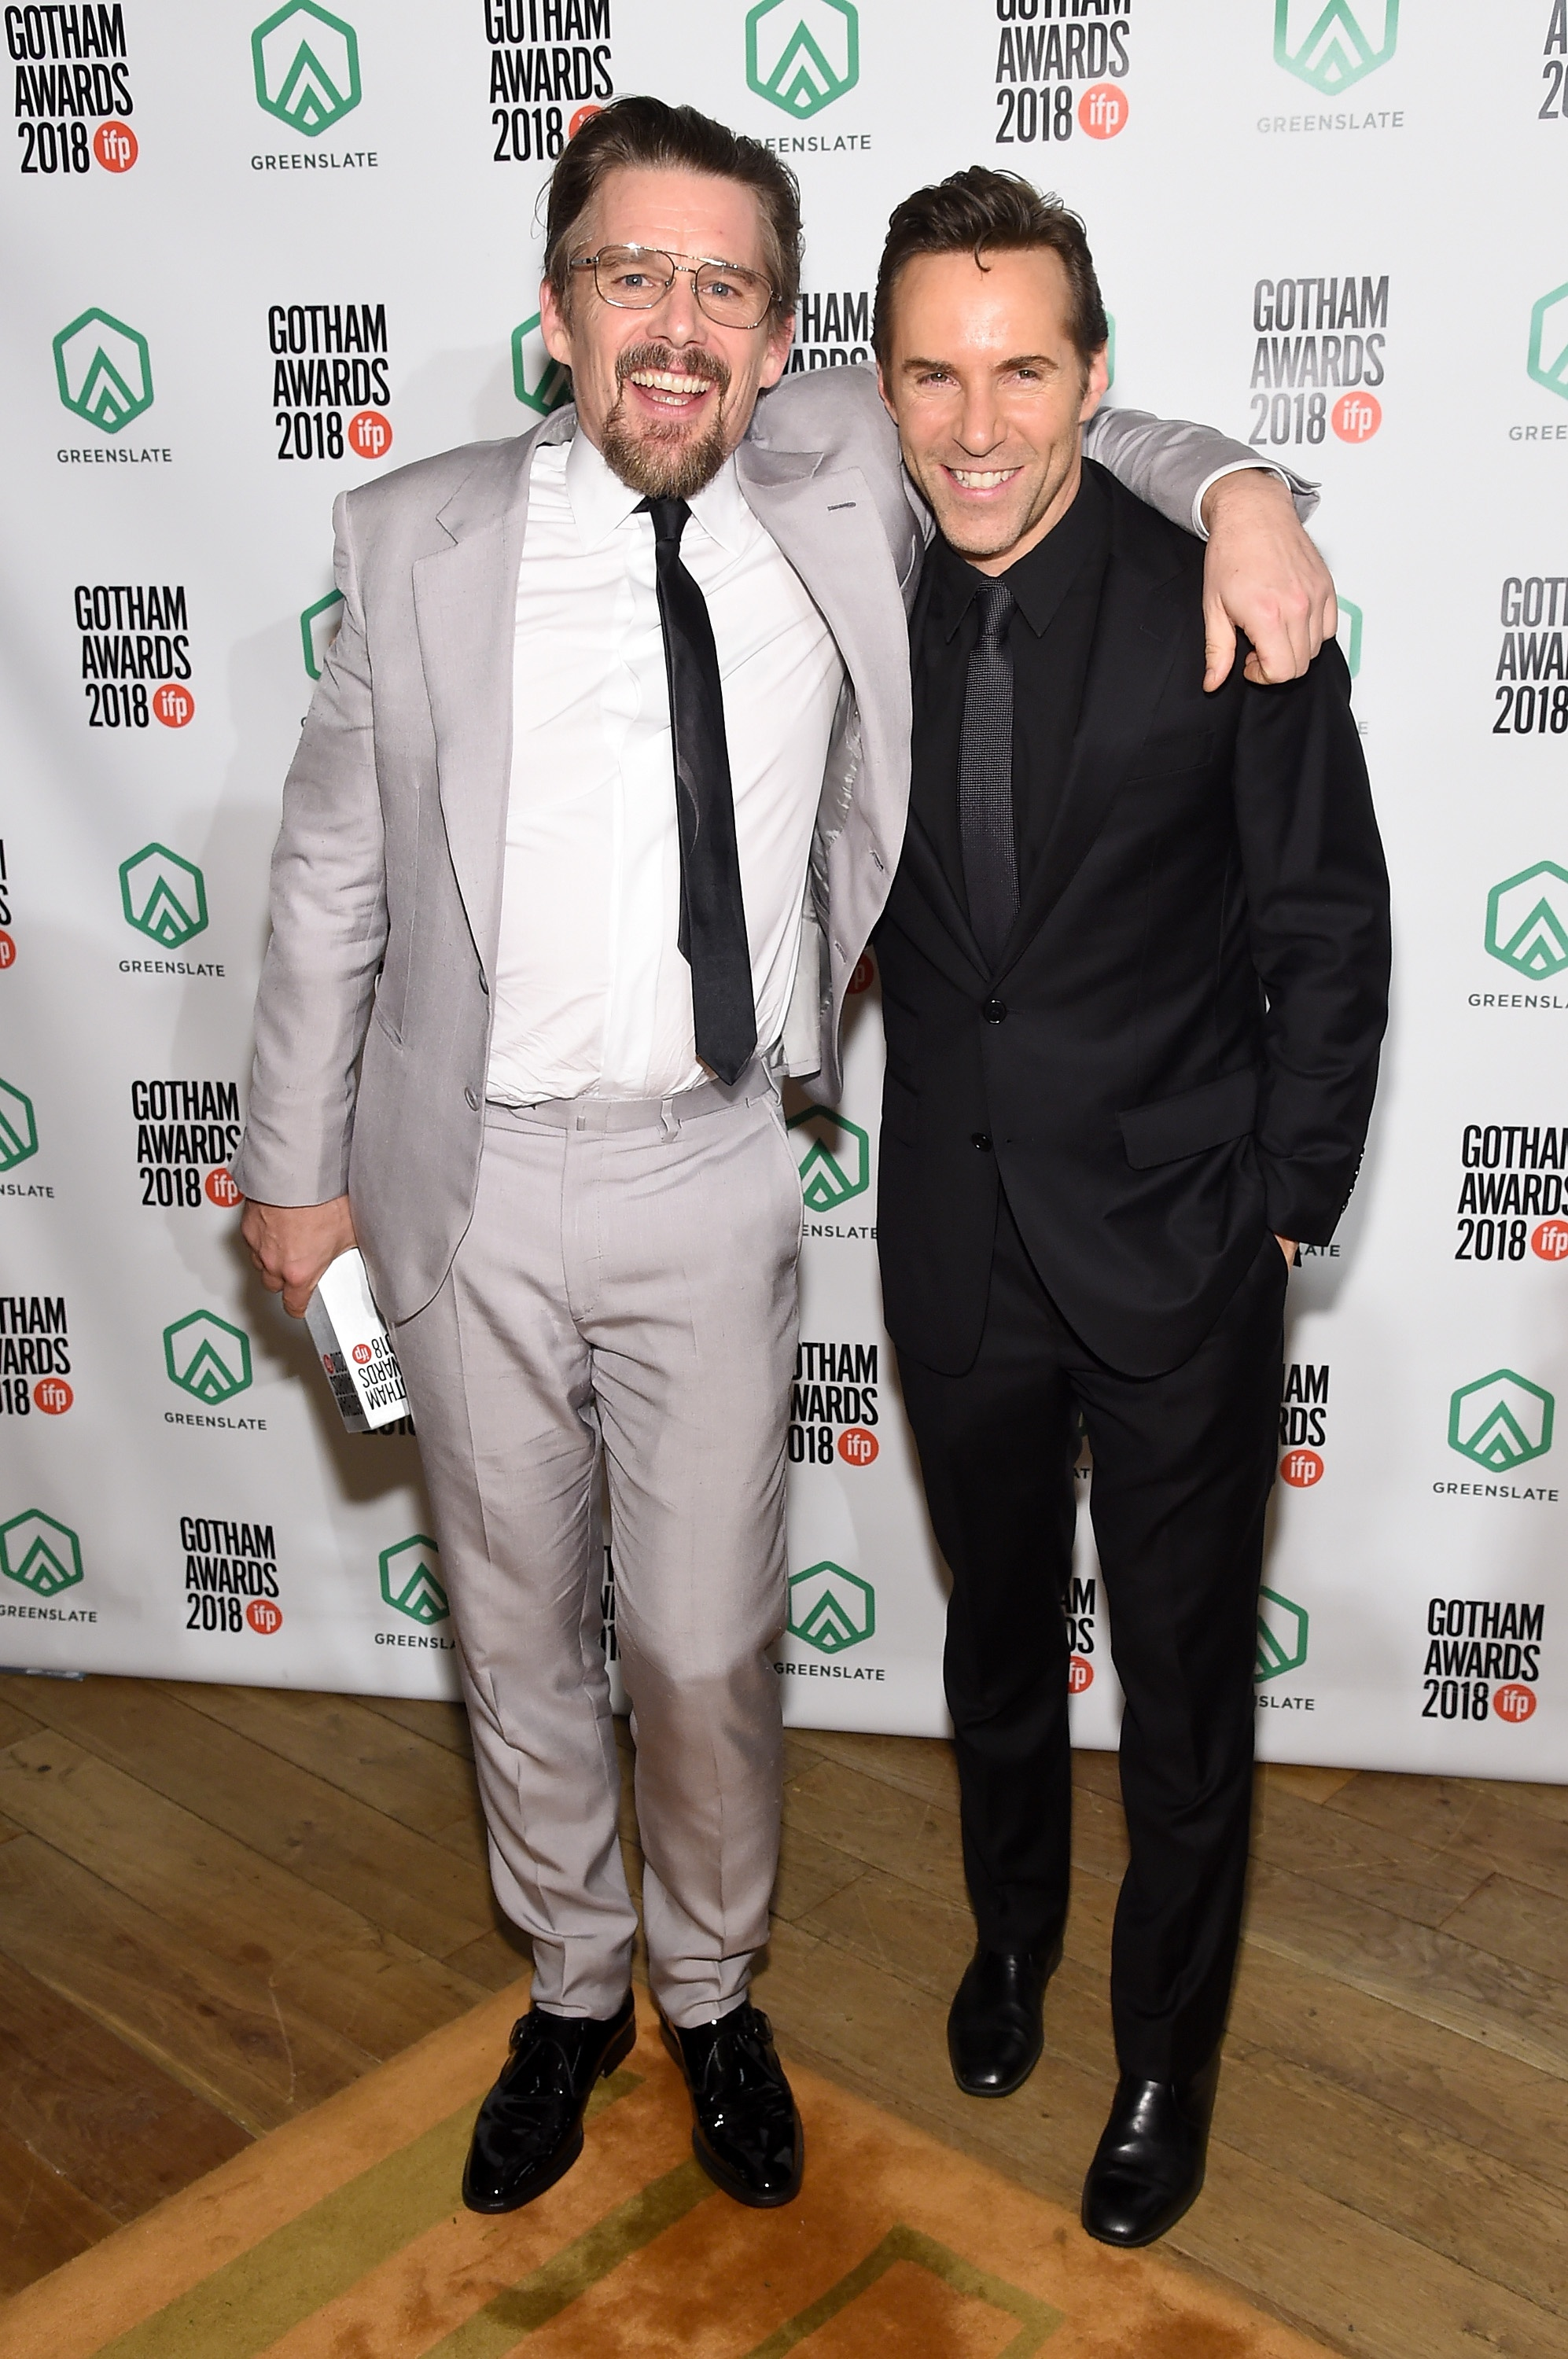 Ethan Hawke and Alessandro Nivola backstage in the GreenSlate Greenroom during the 28th Annual Gotham Awards at Cipriani, Wall Street on November 26, 2018 in New York City.